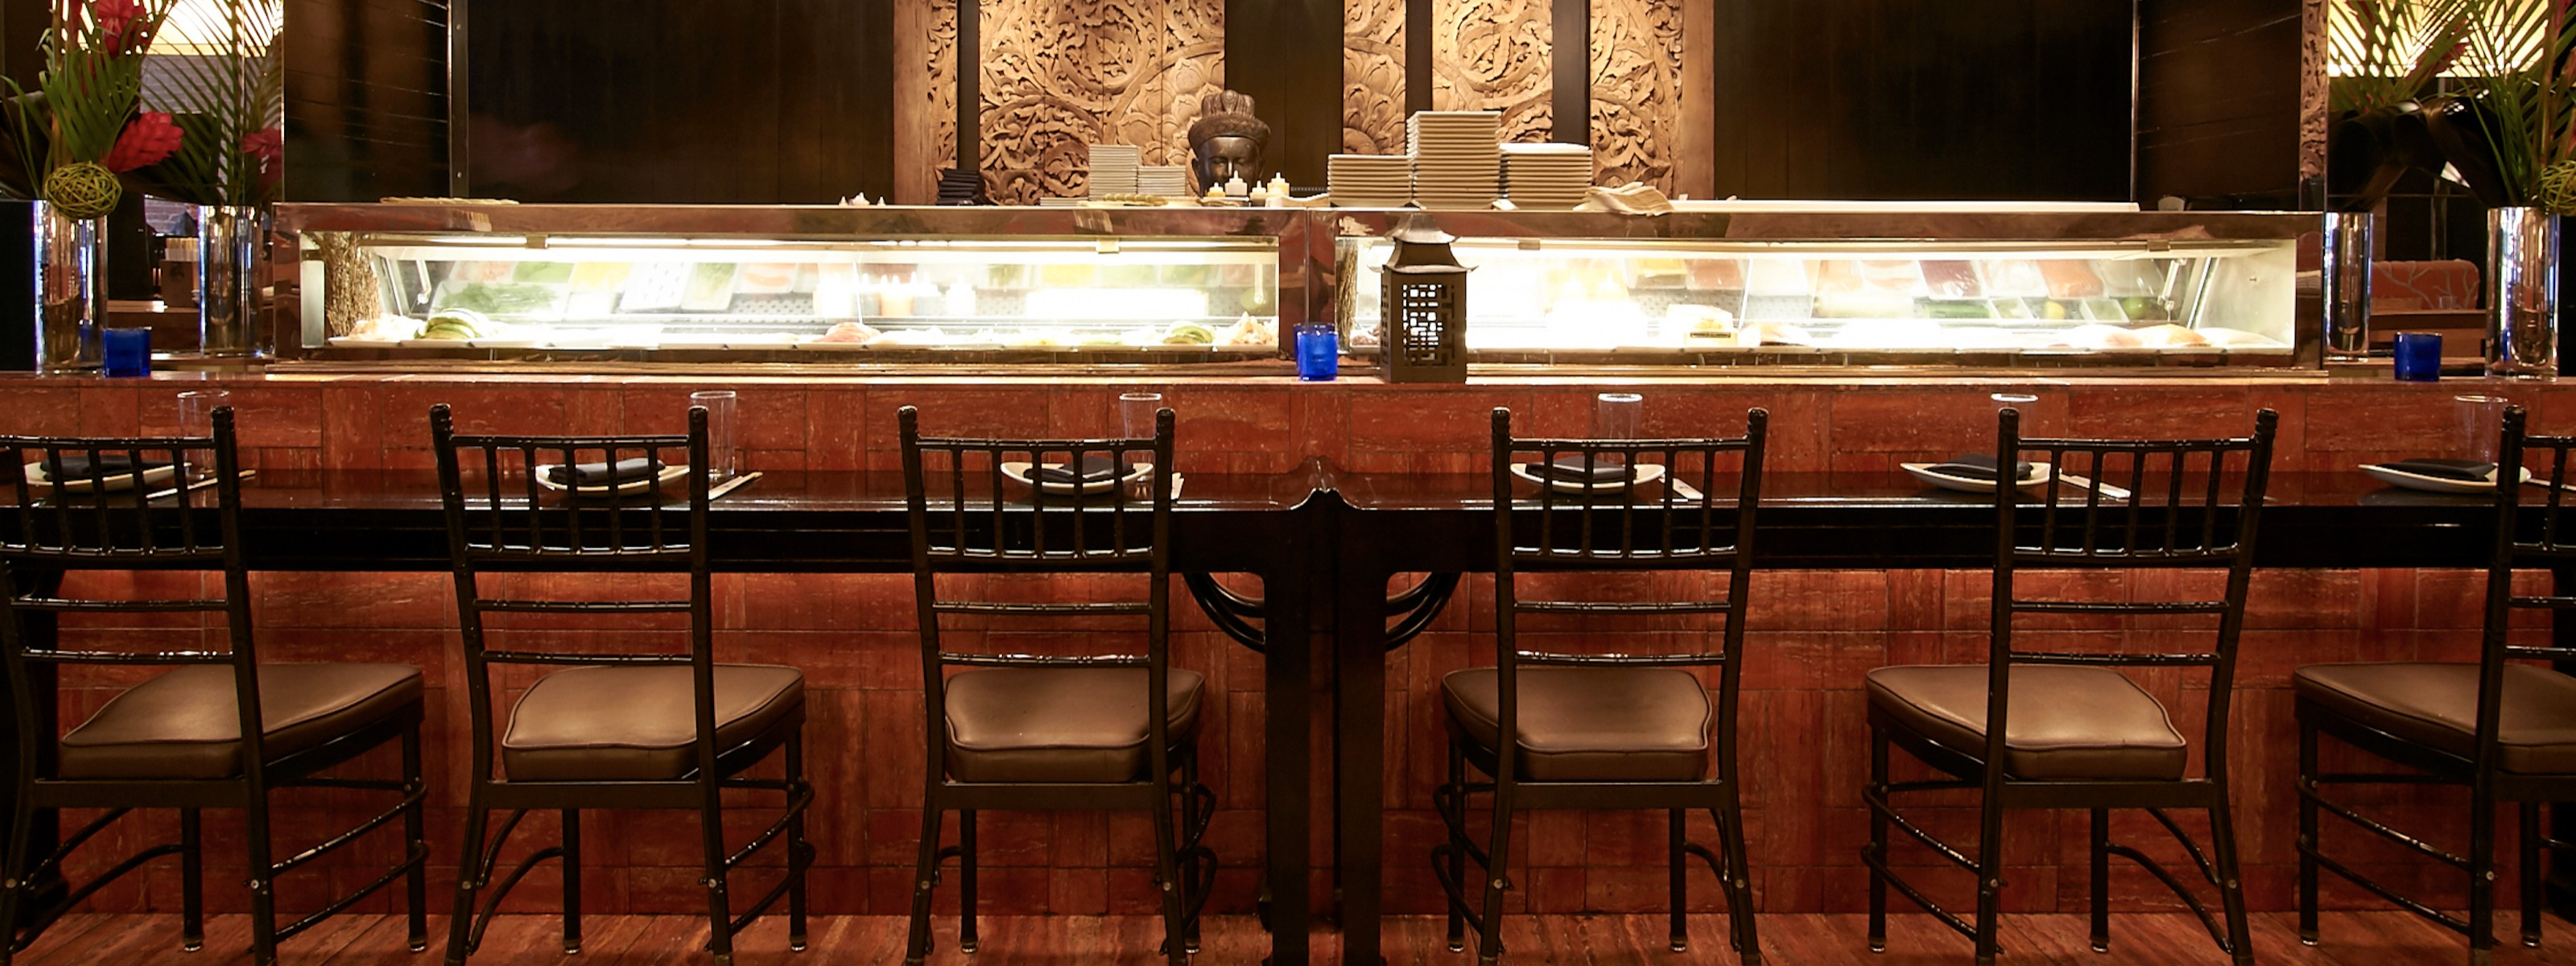 The Best Places To Dine Solo In Chicago - Chicago - The Infatuation